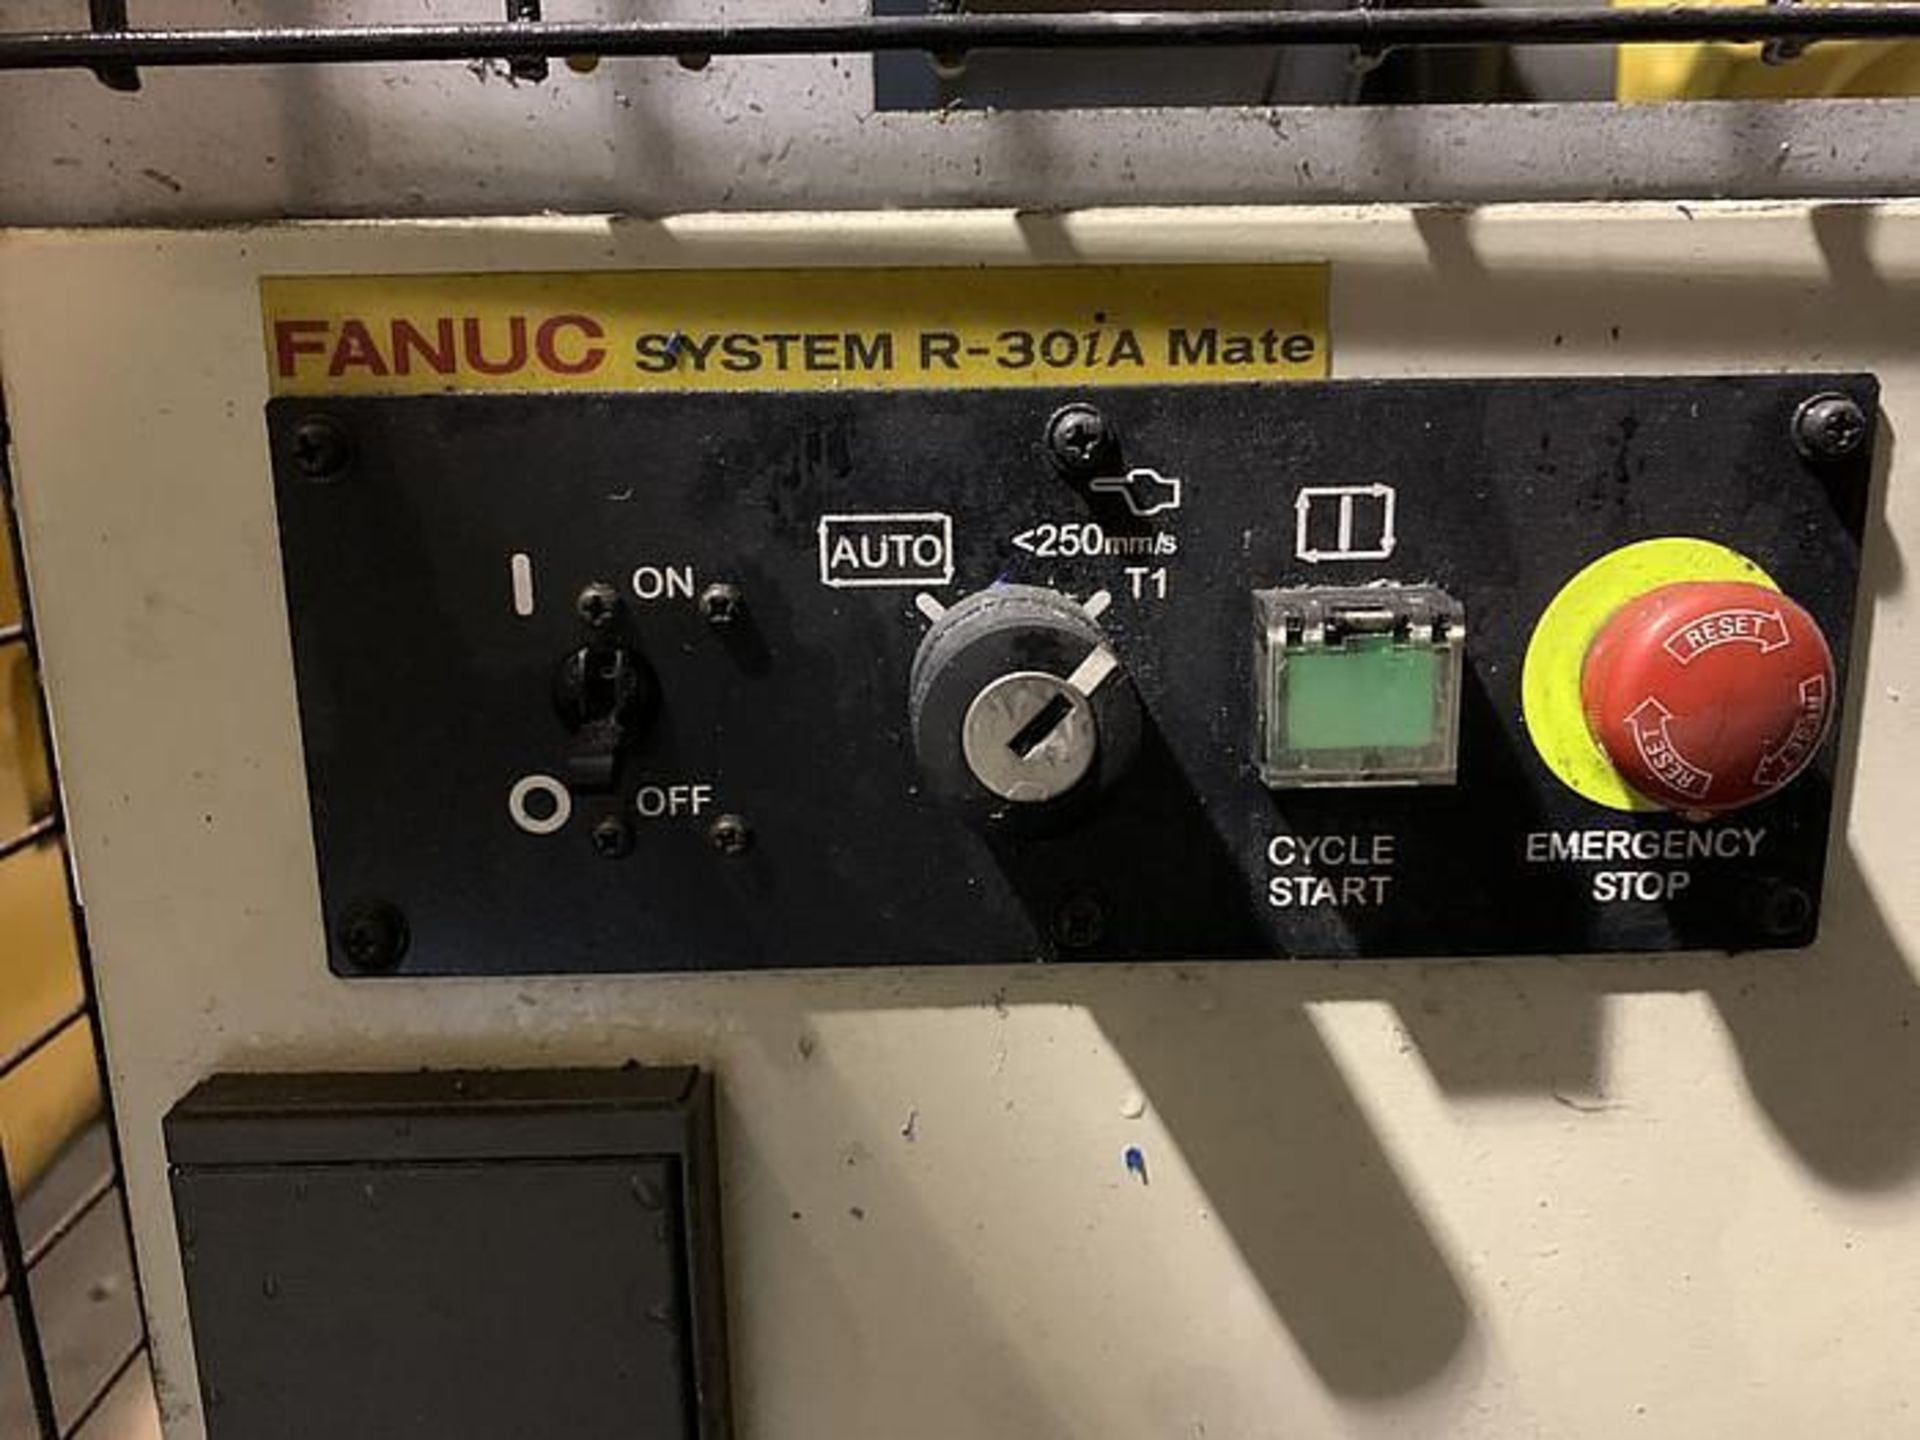 FANUC LR MATE 200iC/5L 6 AXIS CNC ROBOT WITH R30iA CONTROLLER, YEAR 2011, SN F113130 - Image 5 of 6